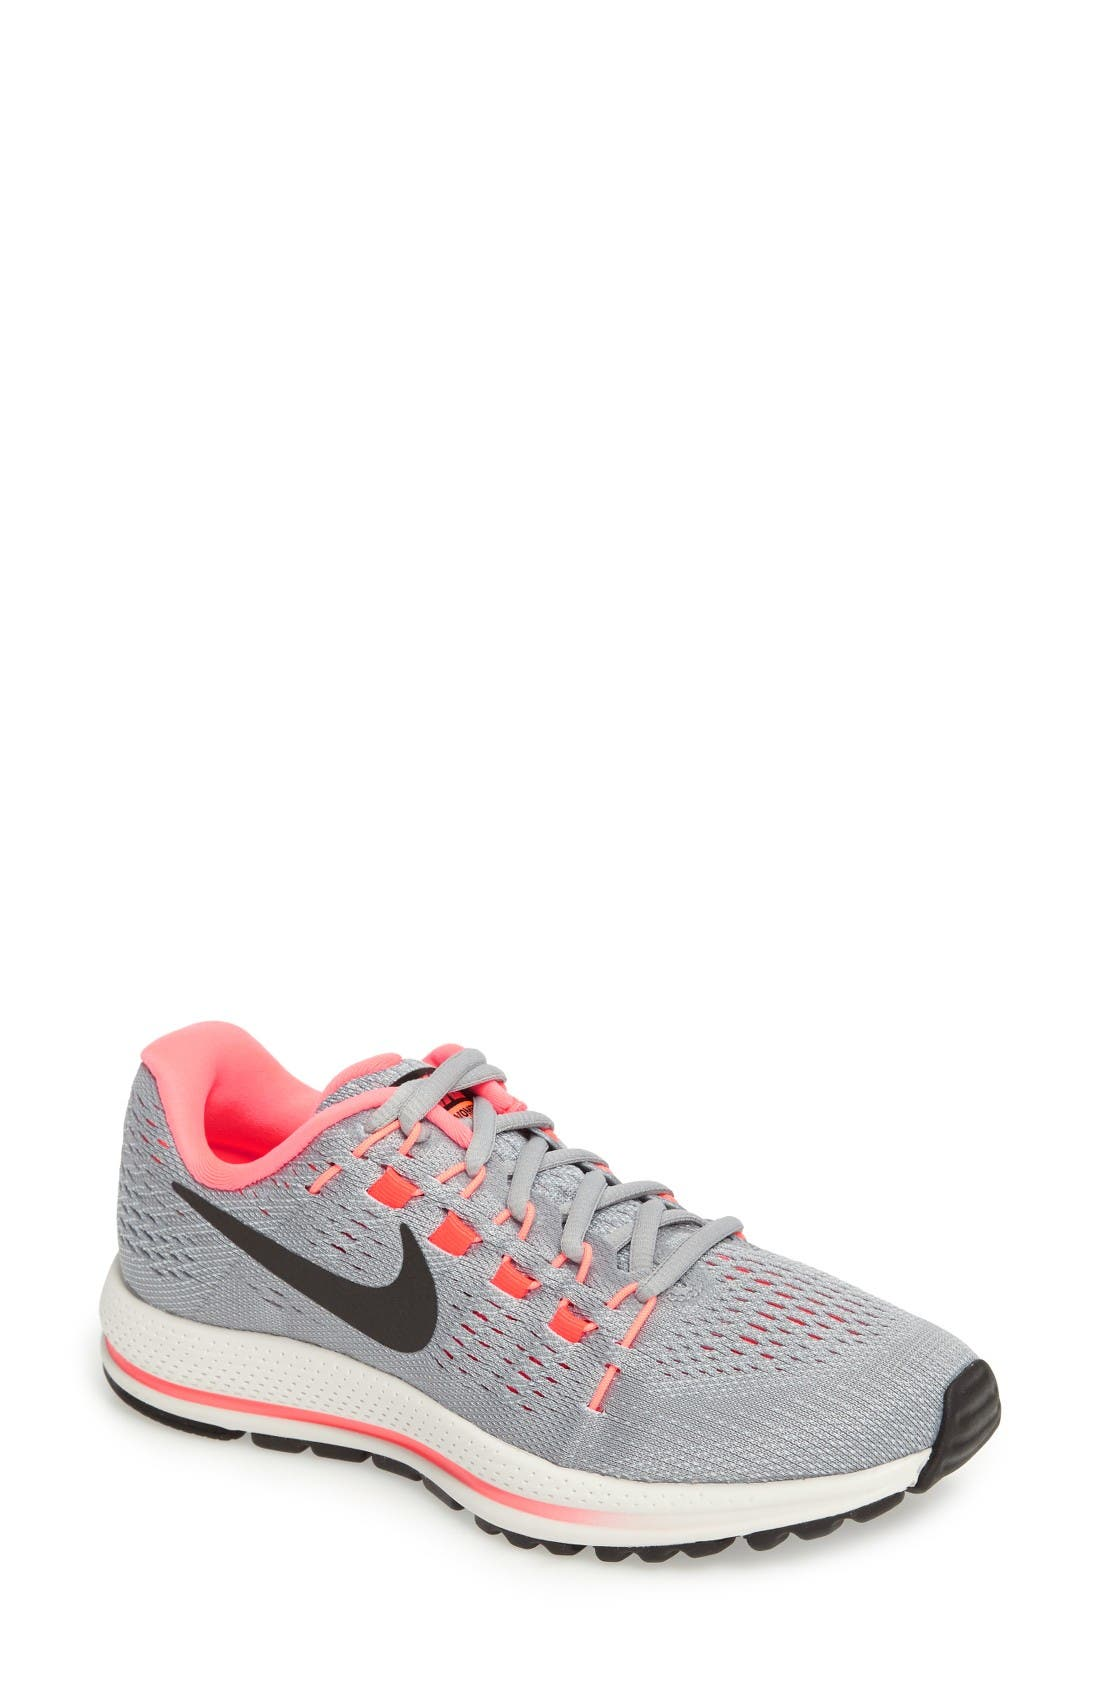 Nike Air Zoom Vomero 12 Running Shoe (Women)